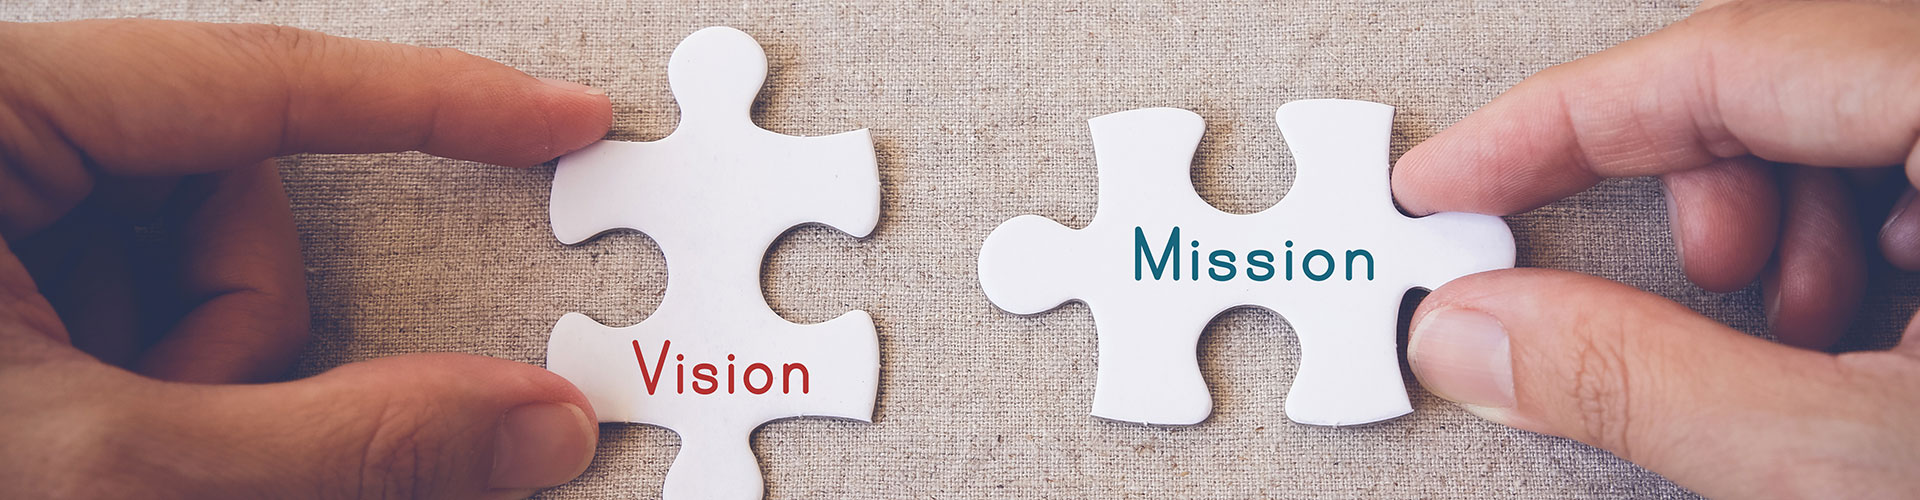 mission-vision-values-page